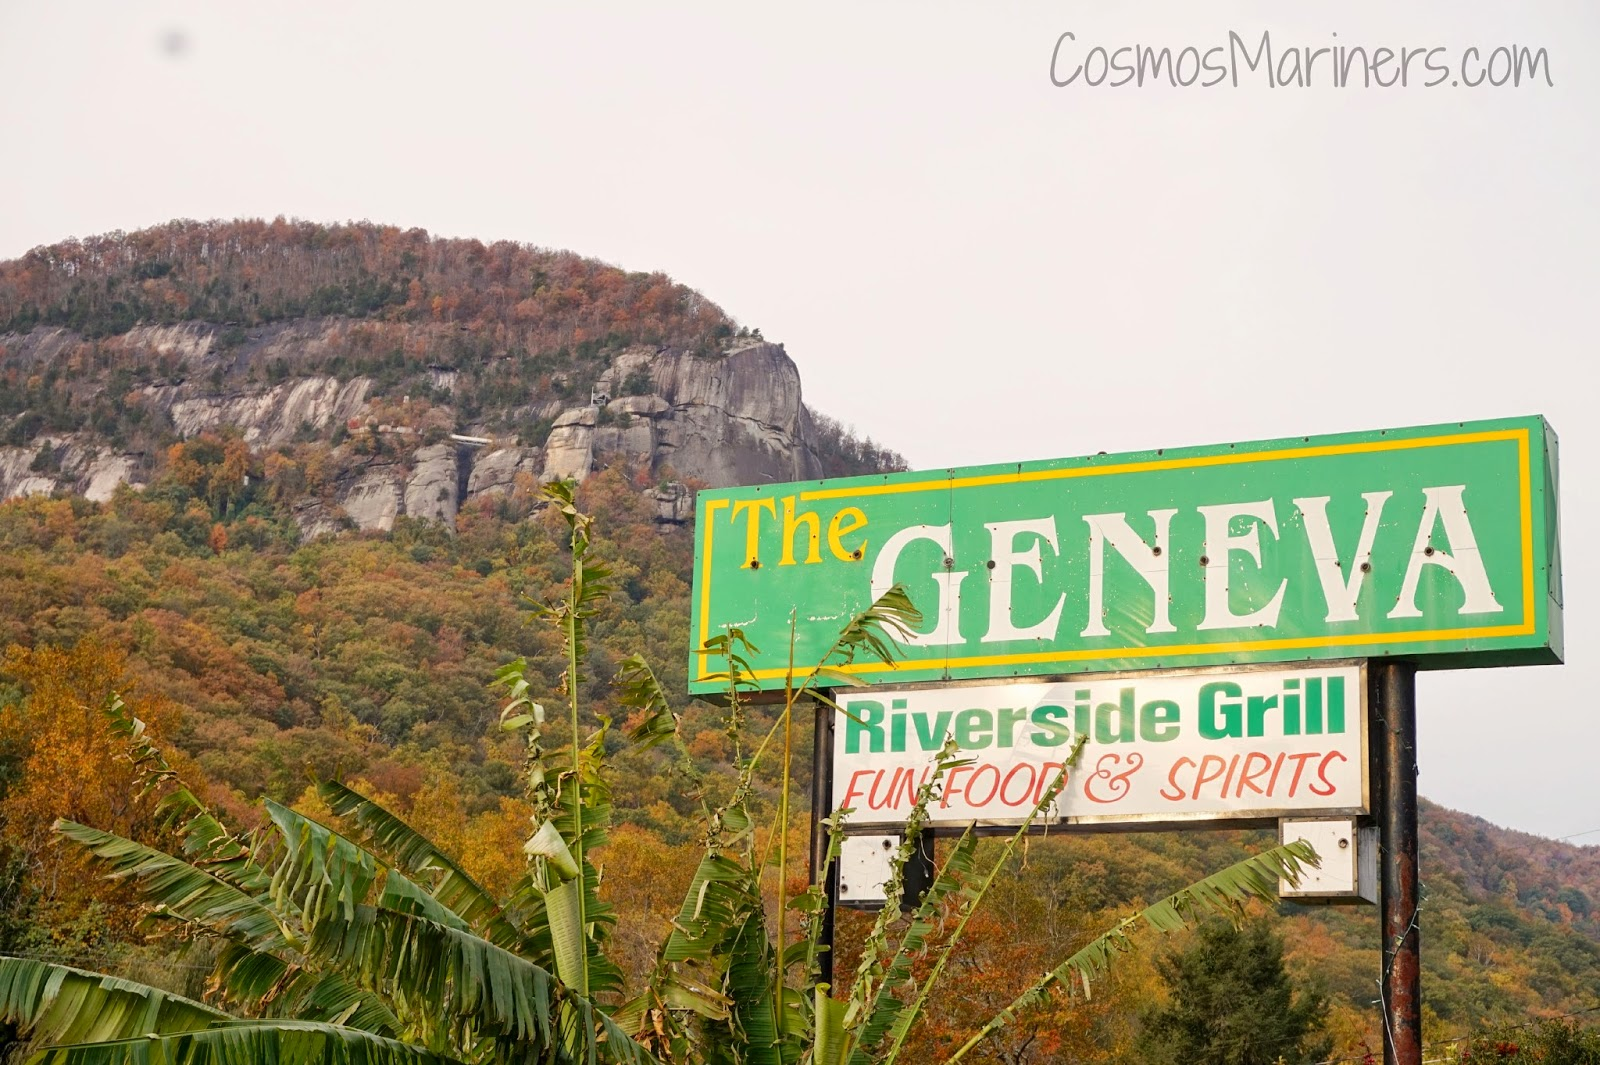 Geneva Riverside Motel Lake Lure Nc Cosmosmariners